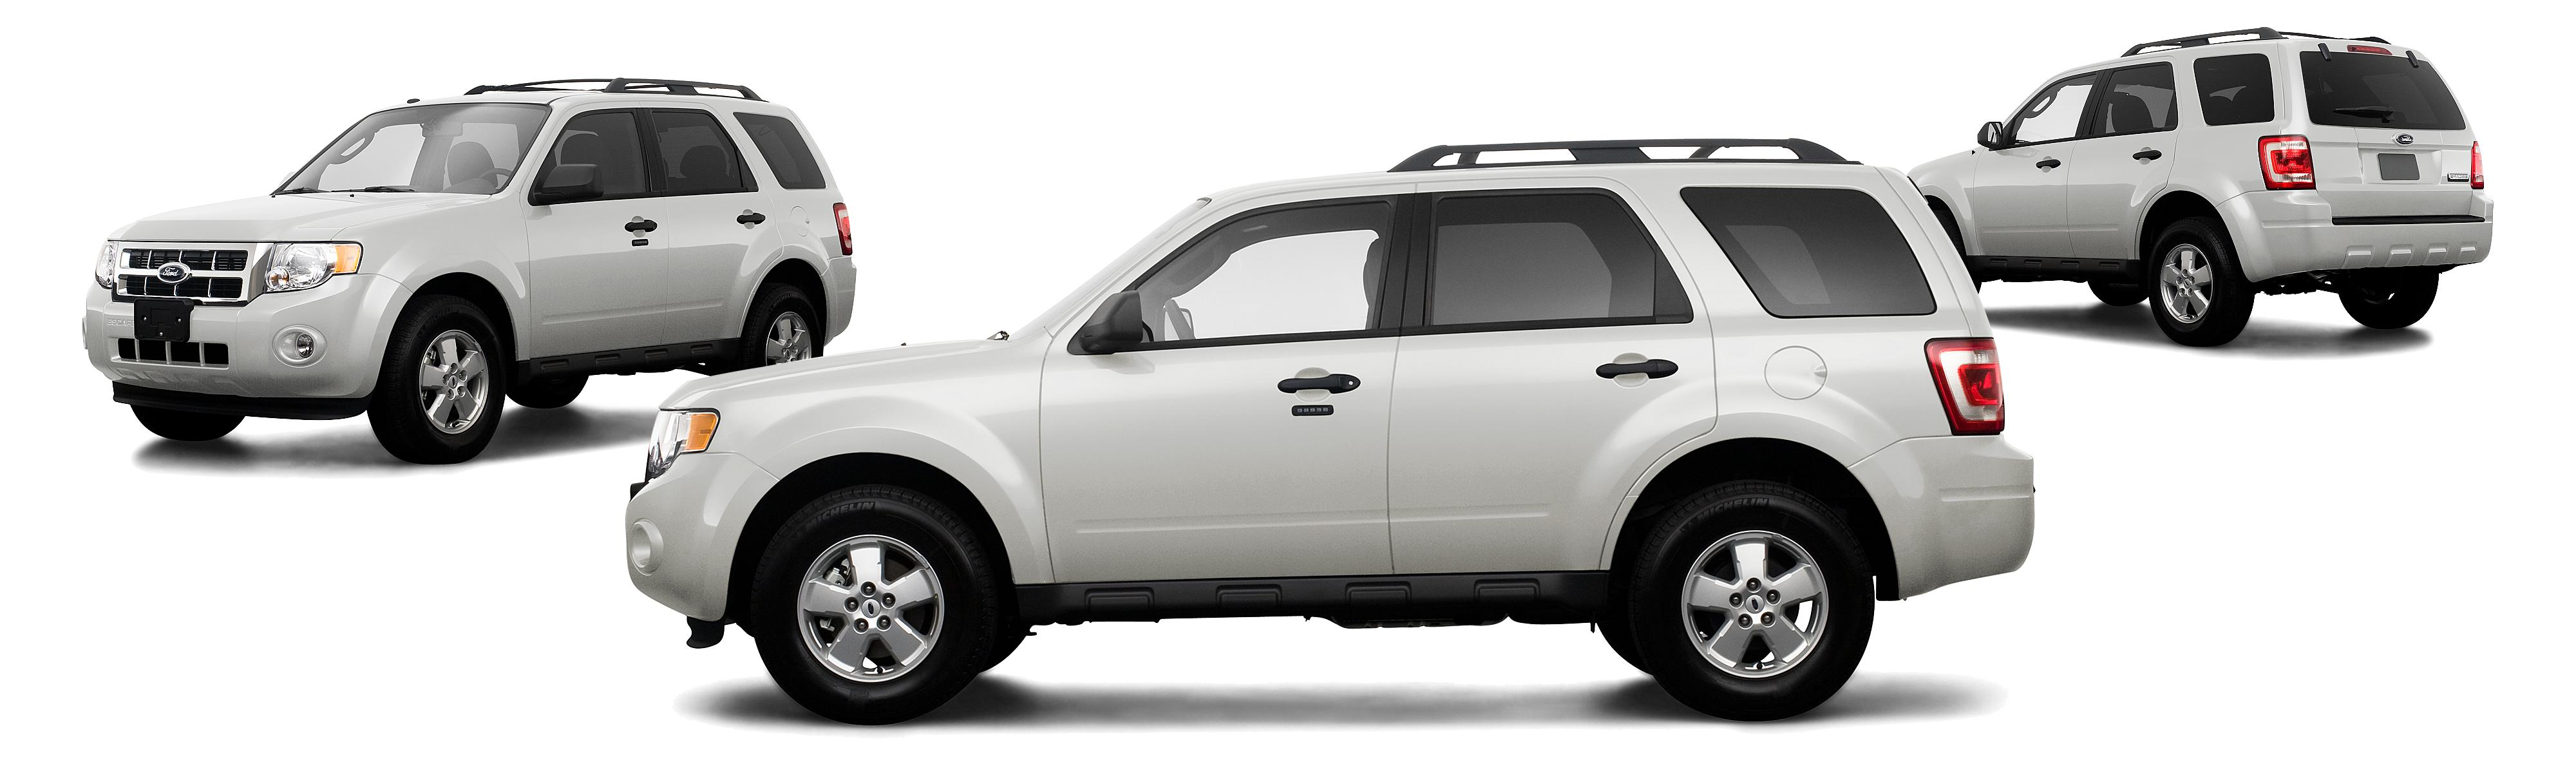 2009 Ford Escape AWD XLT 4dr SUV - Research - GrooveCar